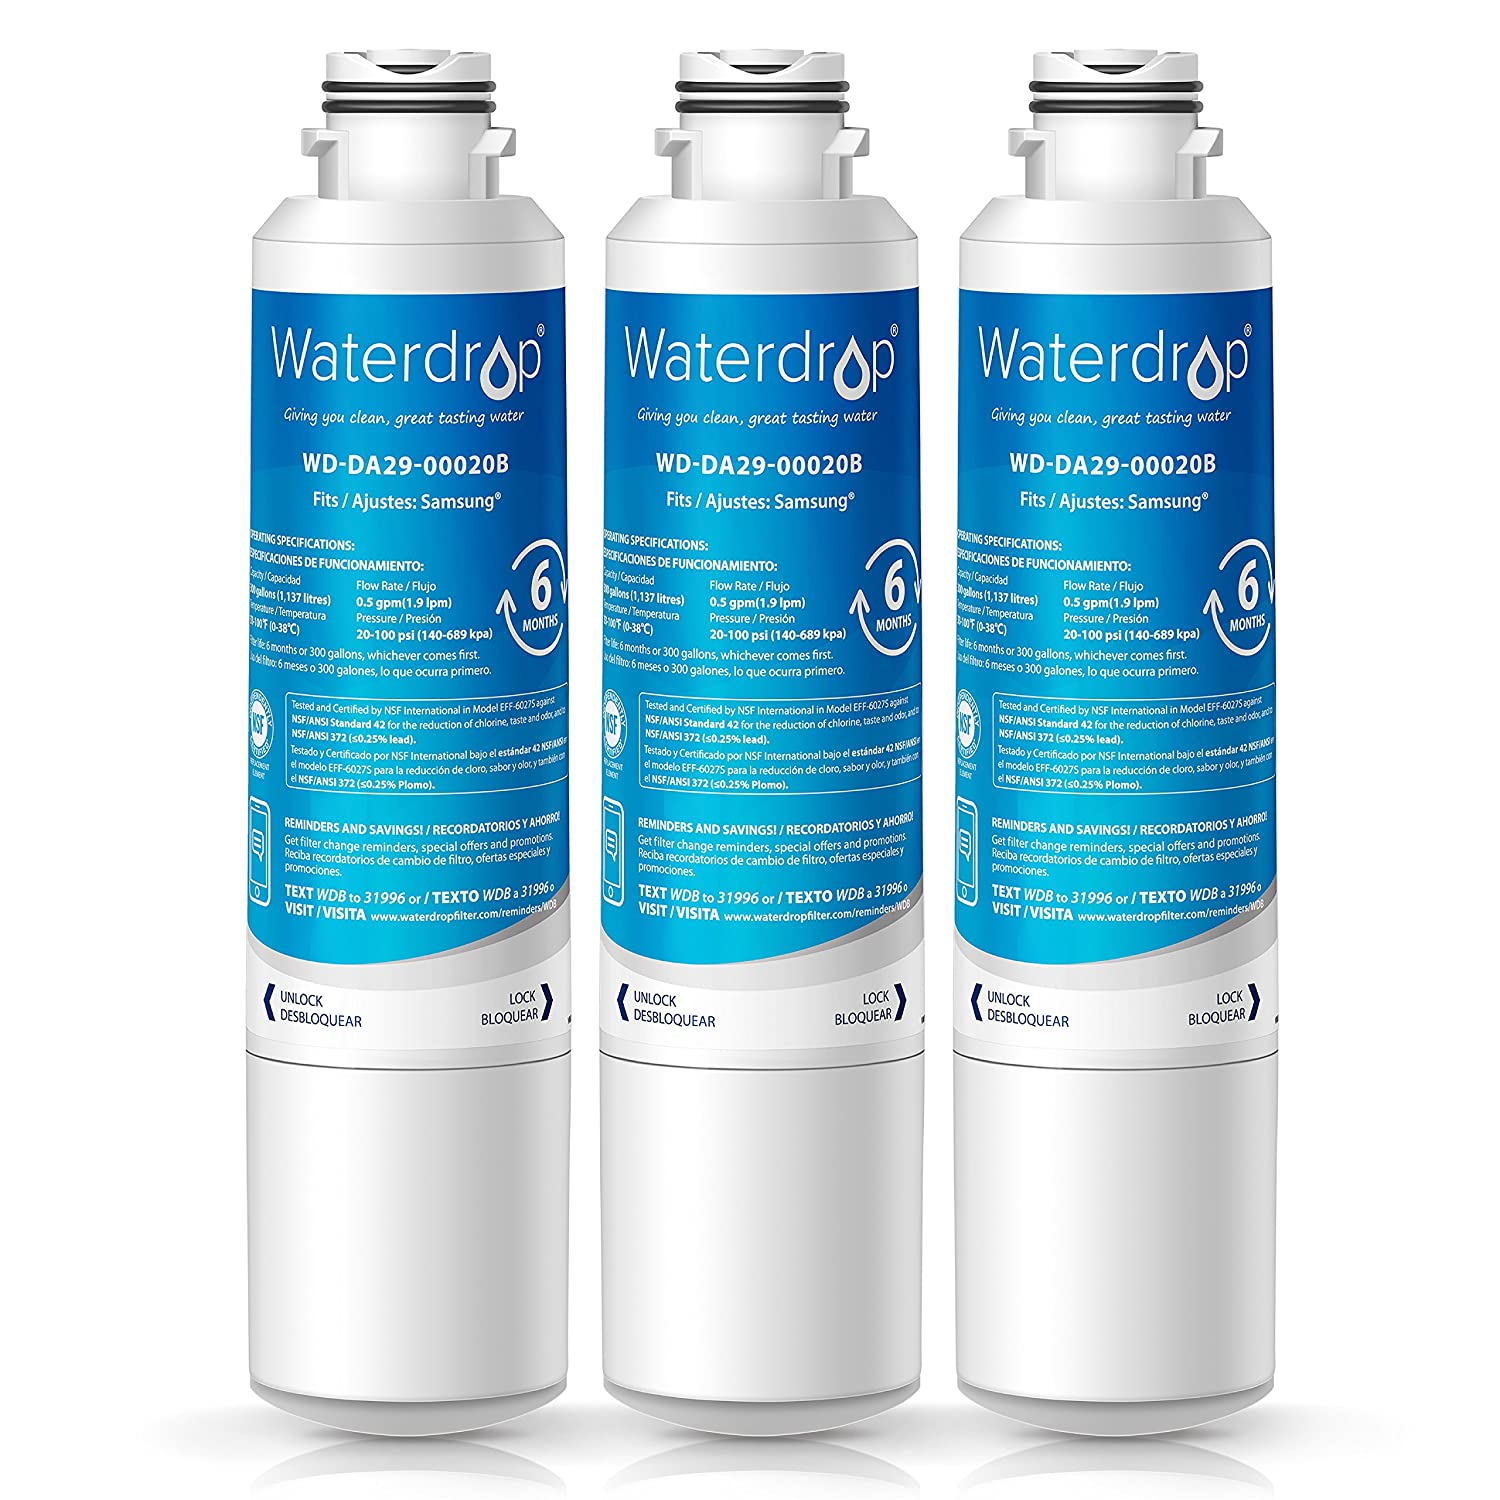 Waterdrop DA29-00020B Refrigerator Water Filter, Compatible with Samsung DA29-00020B, DA29-00020A, HAF-CIN/EXP, 46-9101, Standard, Pack of 3